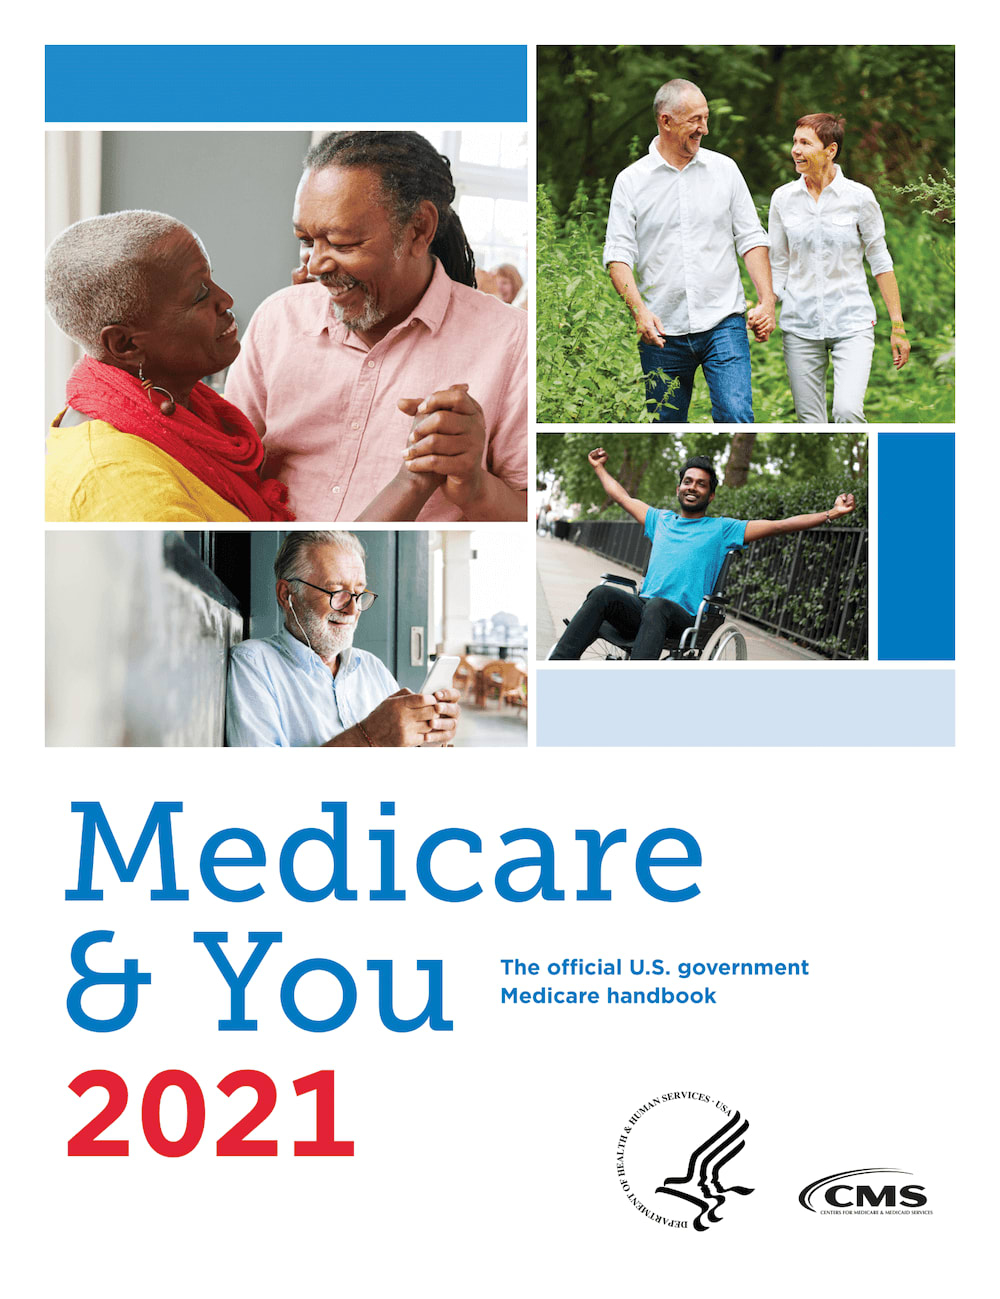 Medicare and You 2021 handbook cover